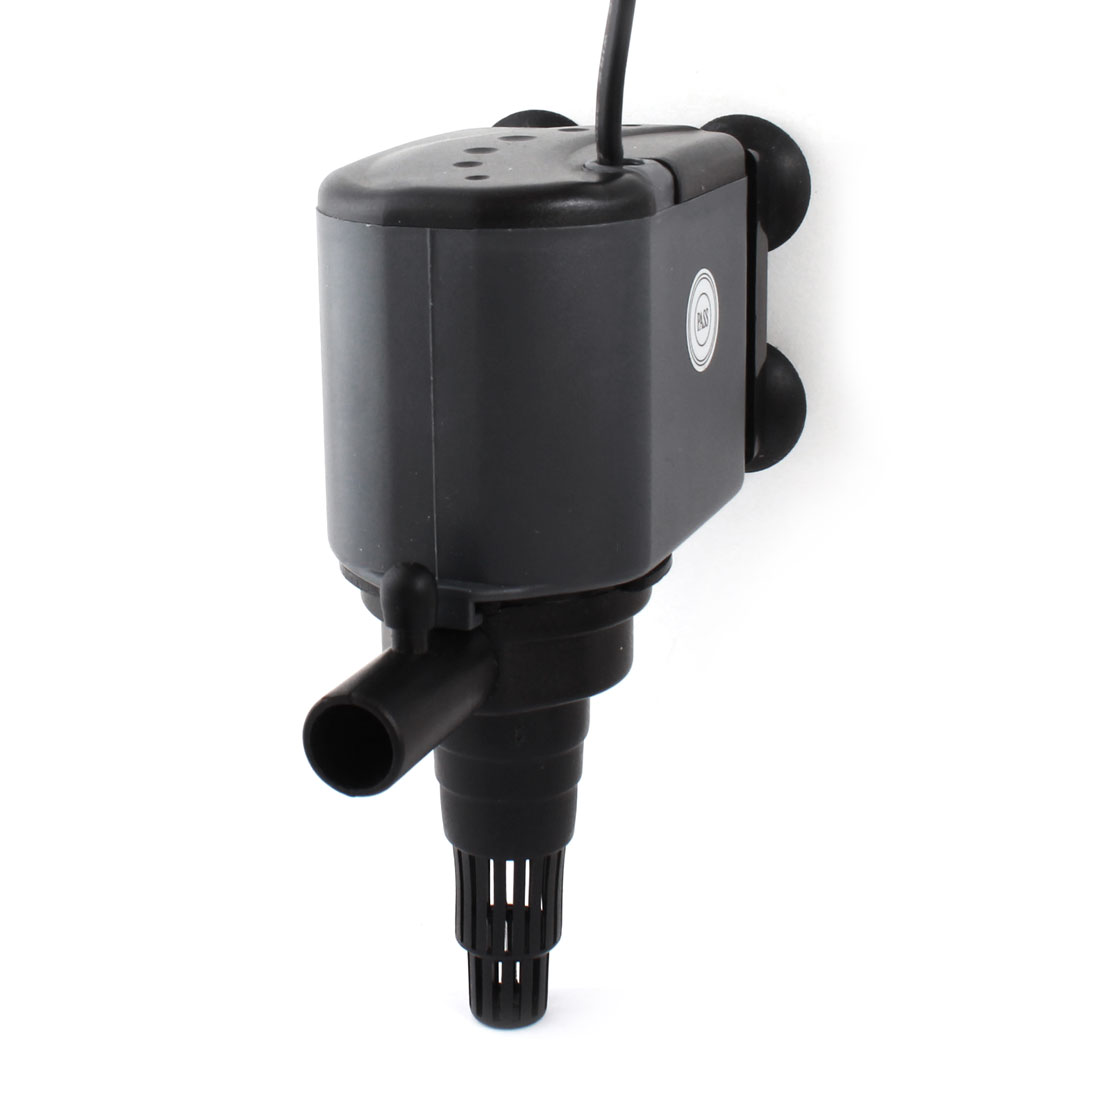 UK Plug AC 220-240V 1200L/H Aquarium Internal Submersible Pump Filter